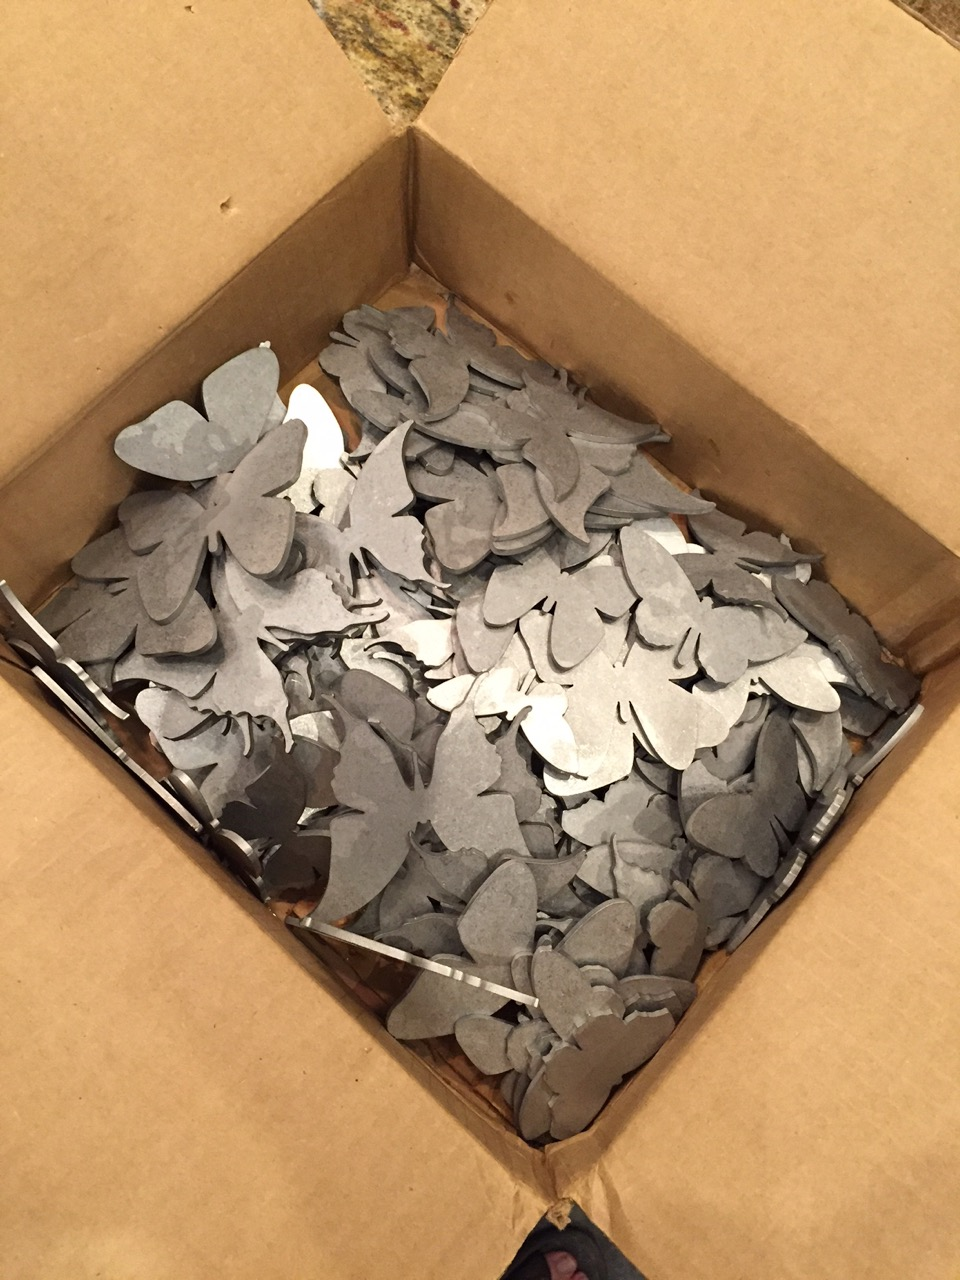 This is the box of butterflies after being tumbled in a stone tumbler to surface the pieces and remove sharp edges.  660 butterflies in all!